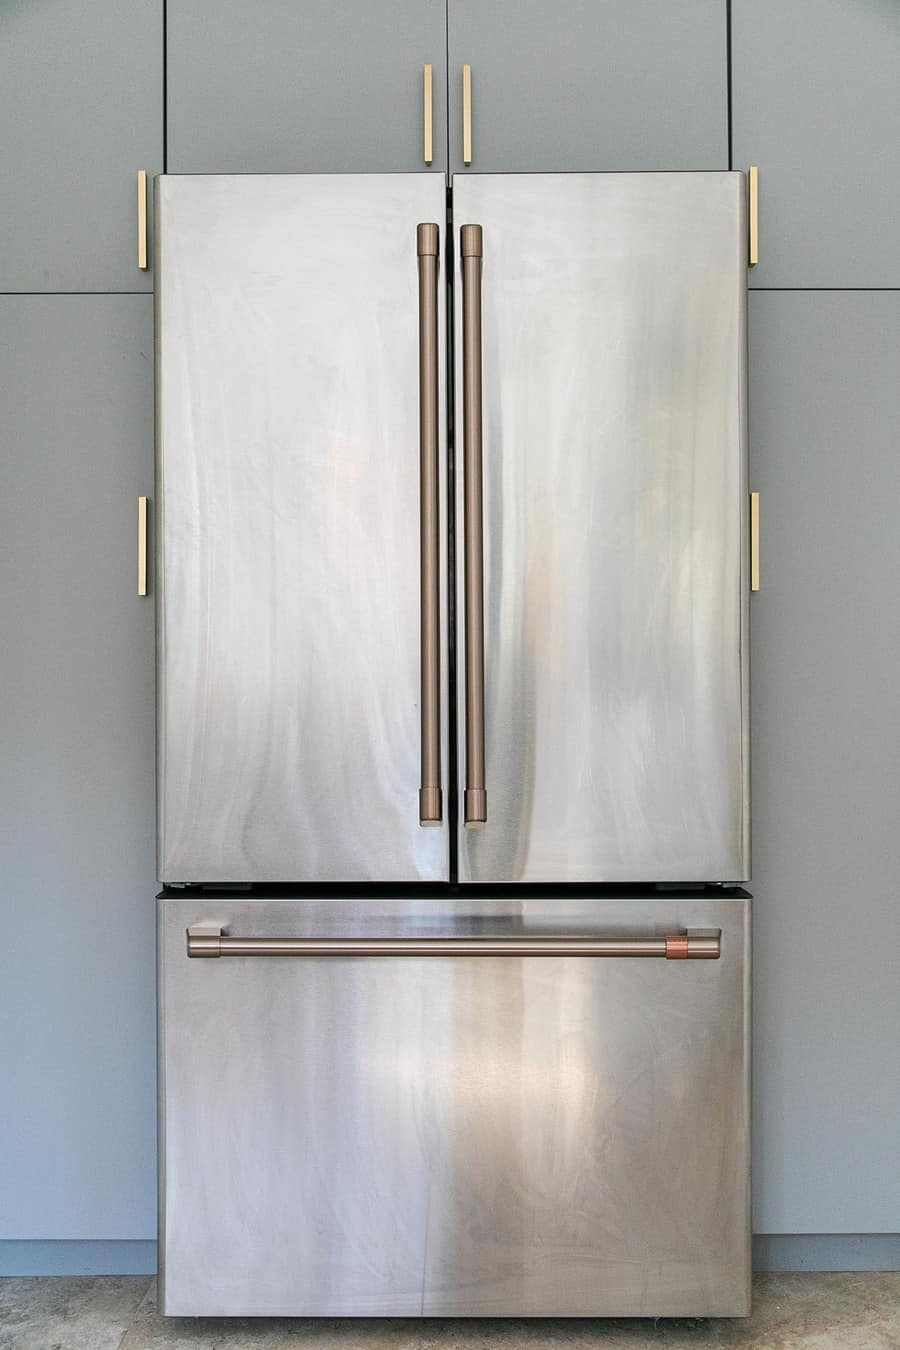 Cafe Appliances stainless steel refrigerator with brushed brass handles